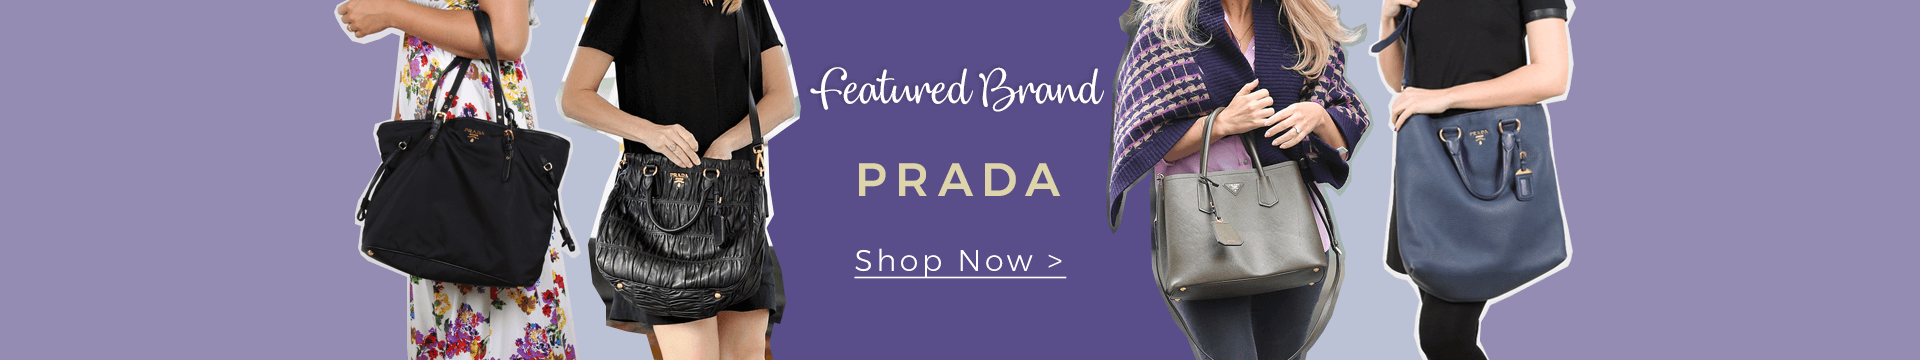 1544524230_5_MP_Web-Slider-Featured-Prada.png